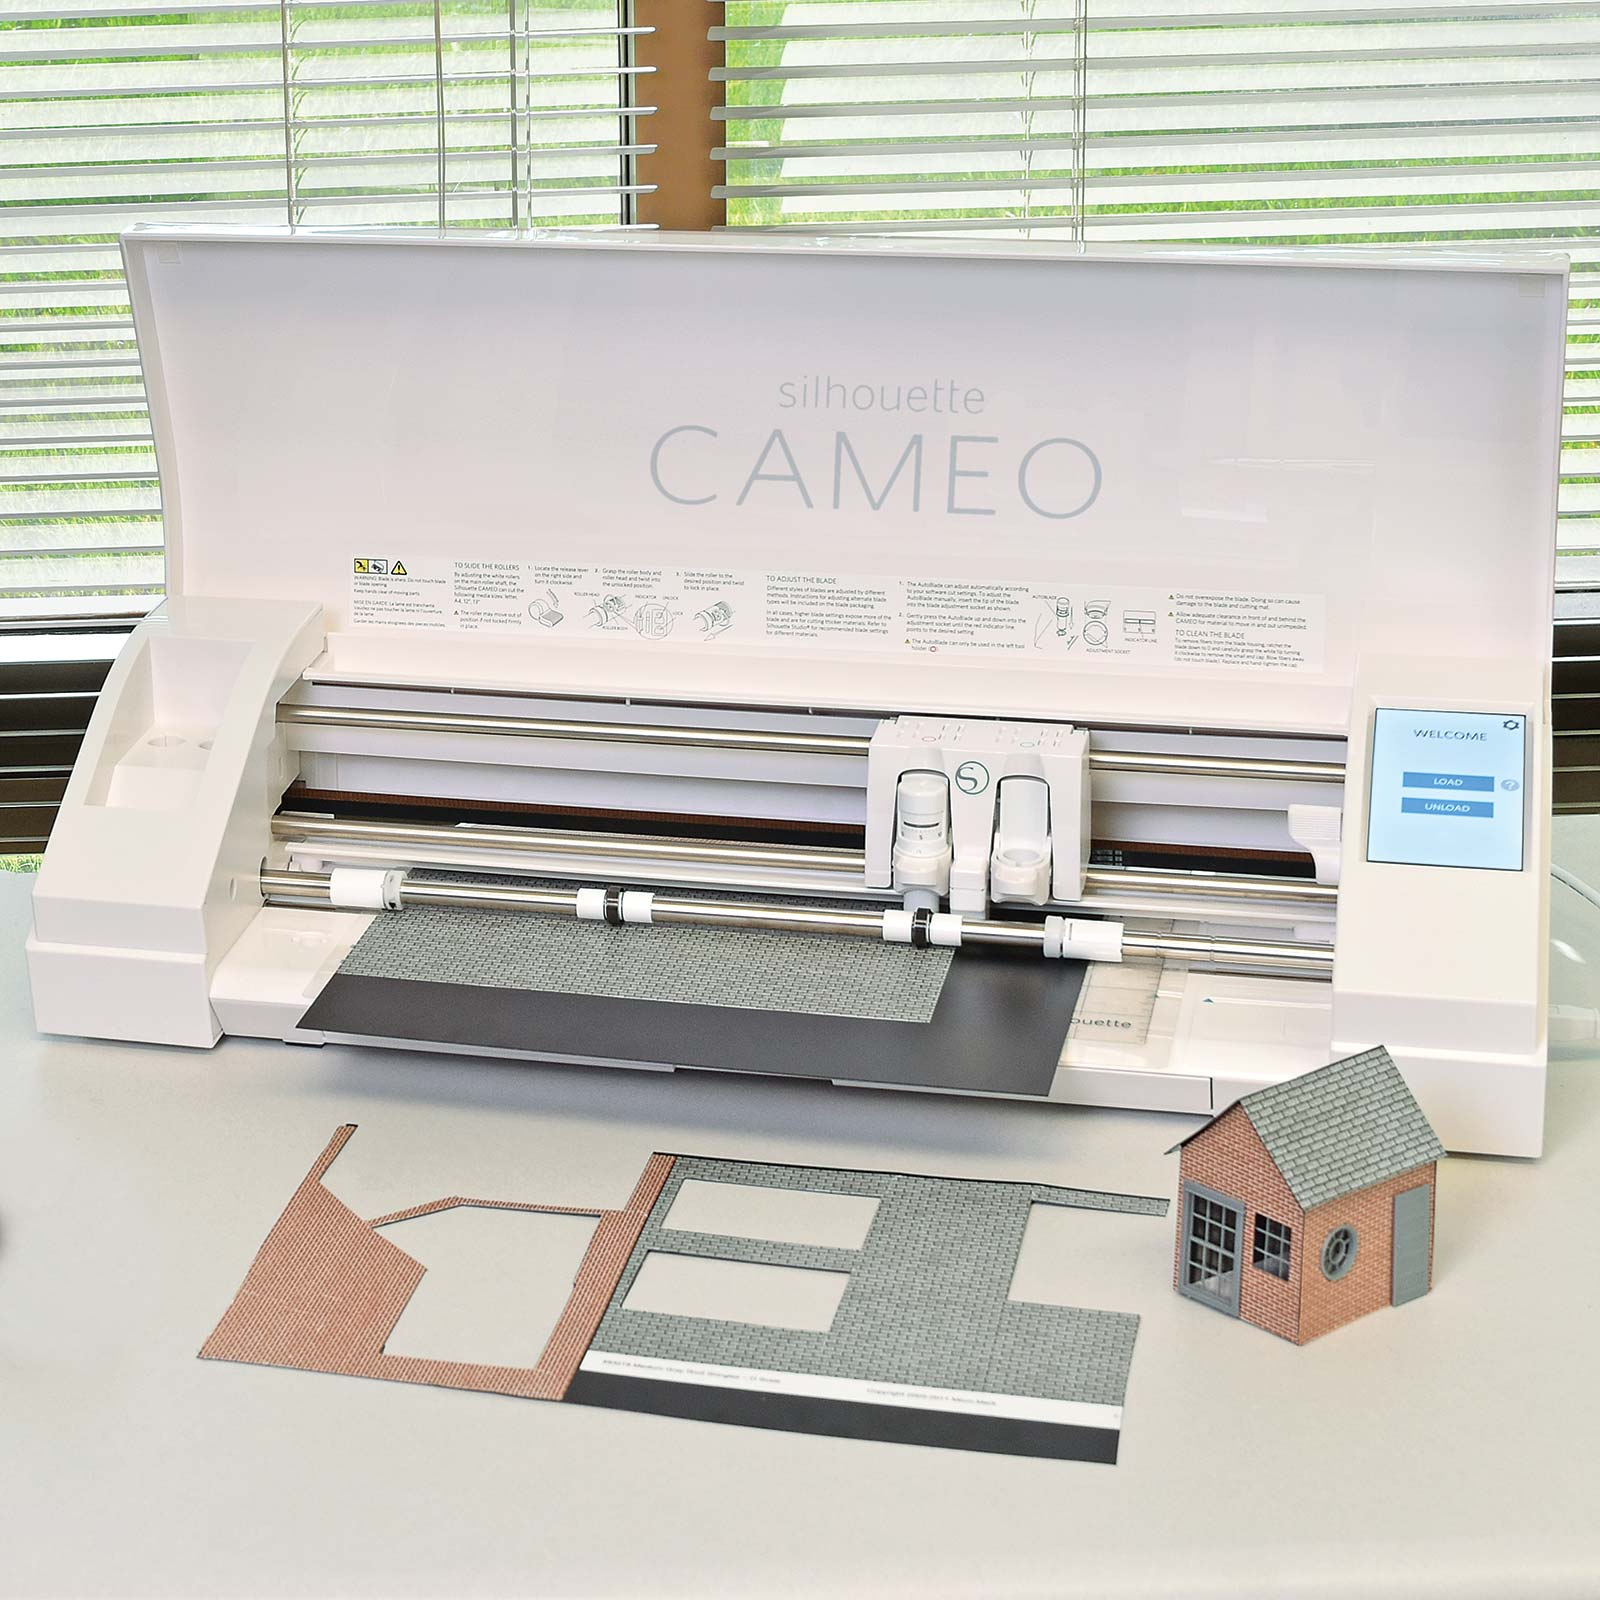 How To Cut Heat Transfer Vinyl With Silhouette Cameo 3